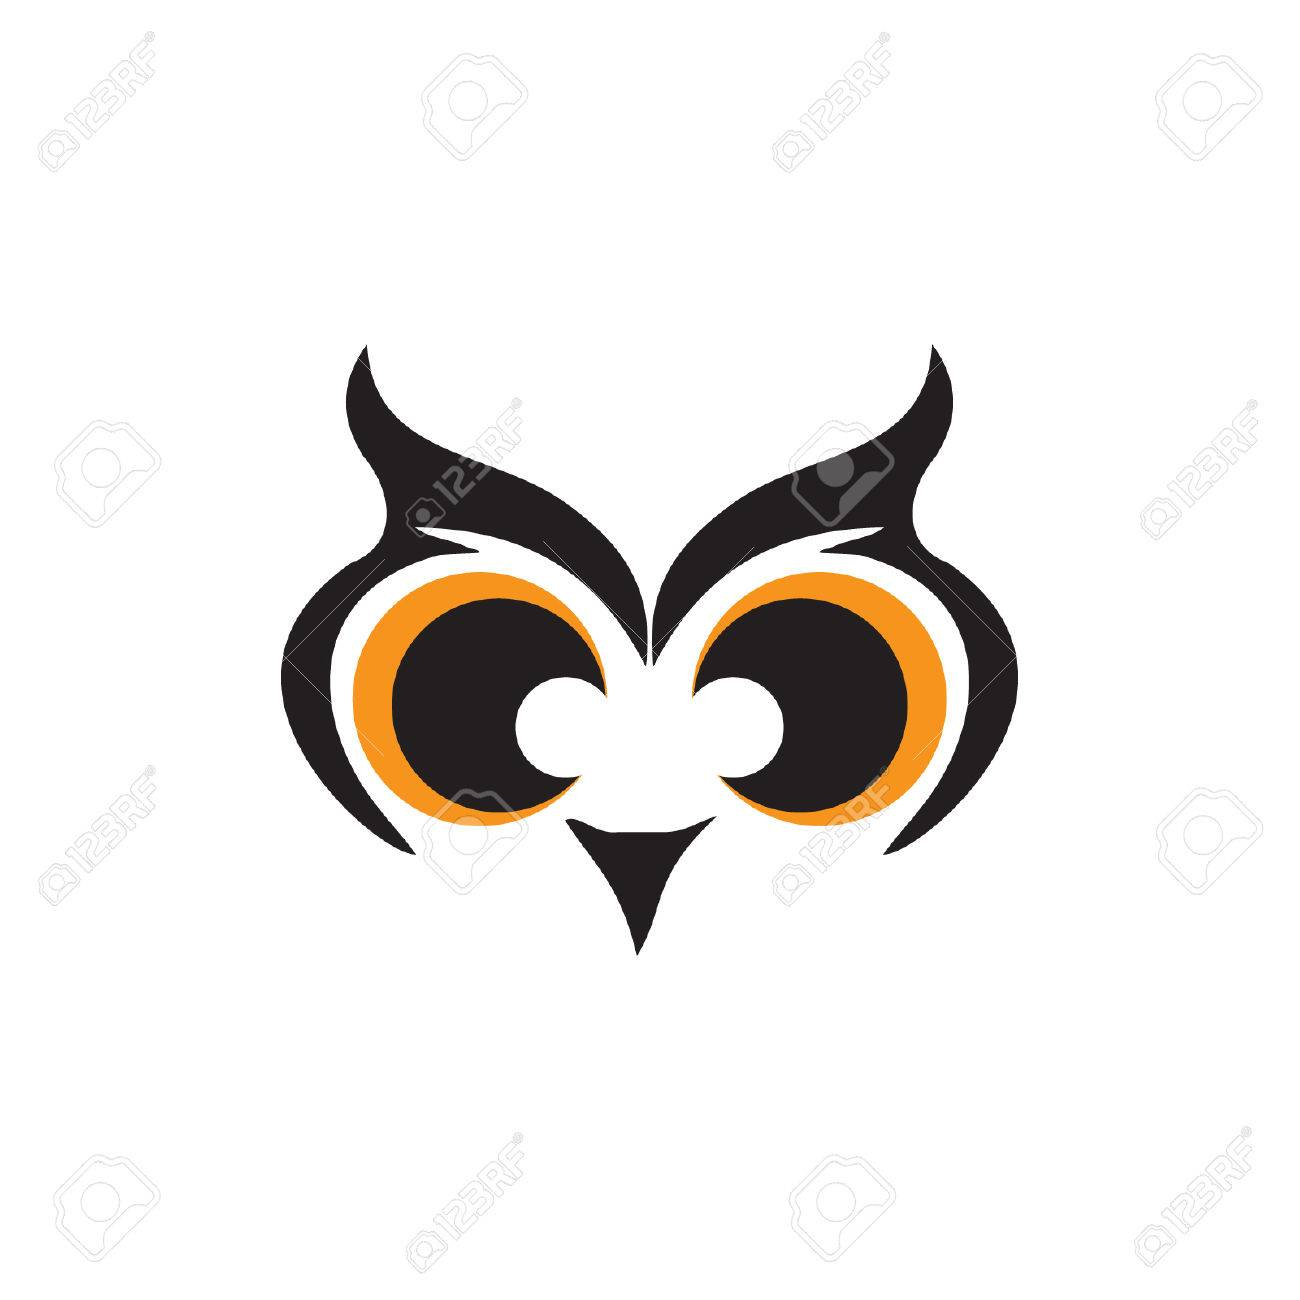 owl eyes royalty free cliparts vectors and stock illustration rh 123rf com cartoon owl big eyes Printable Owl Eyes